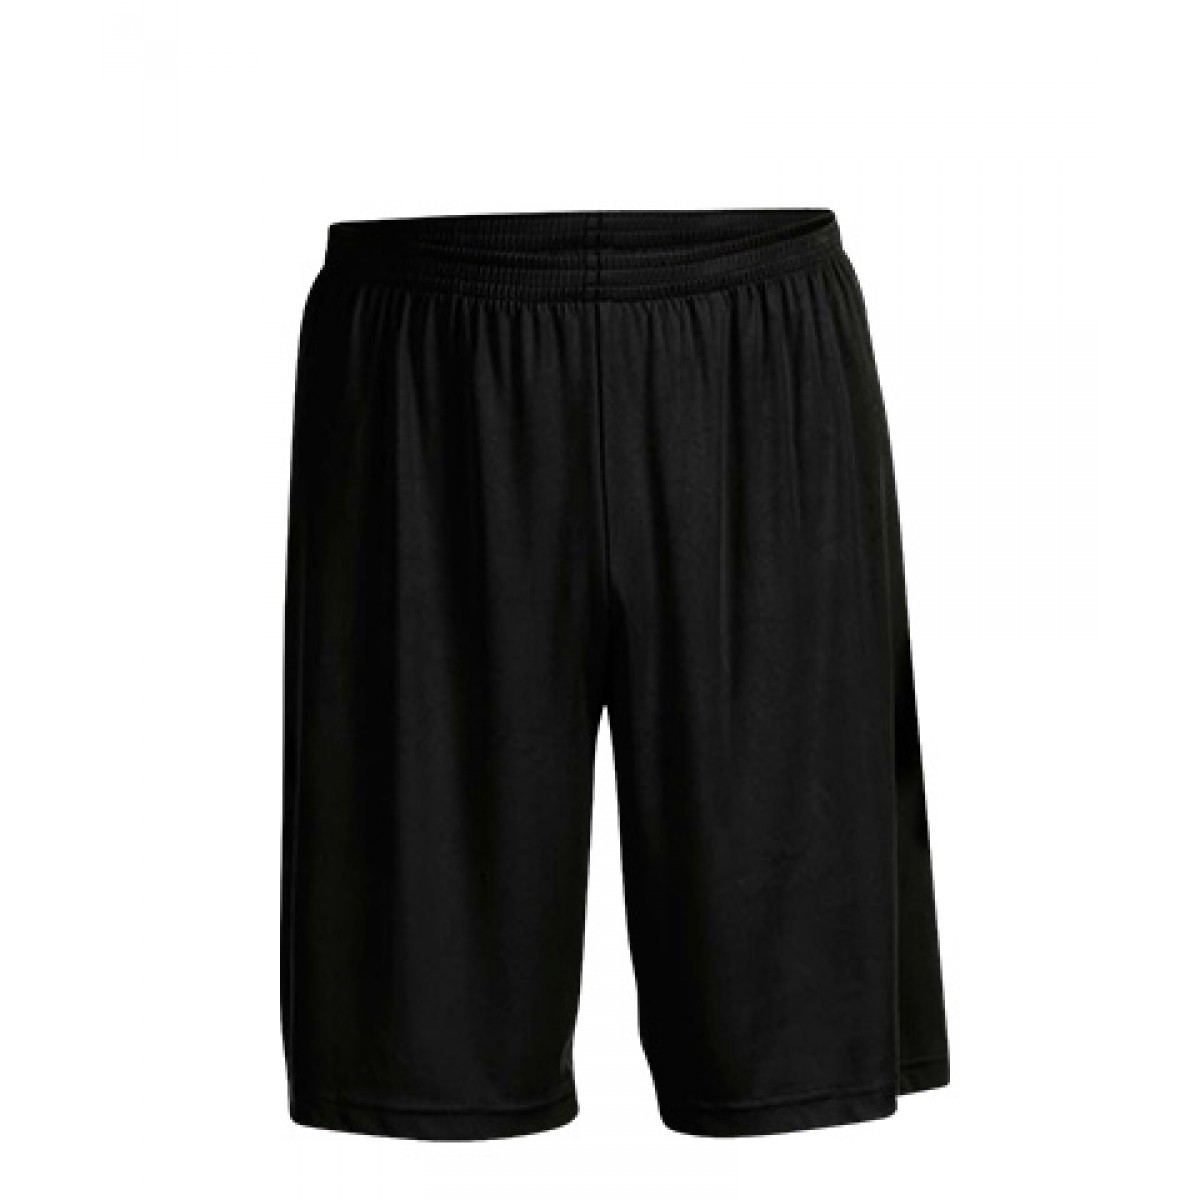 Men's Performance Shorts-Black-L